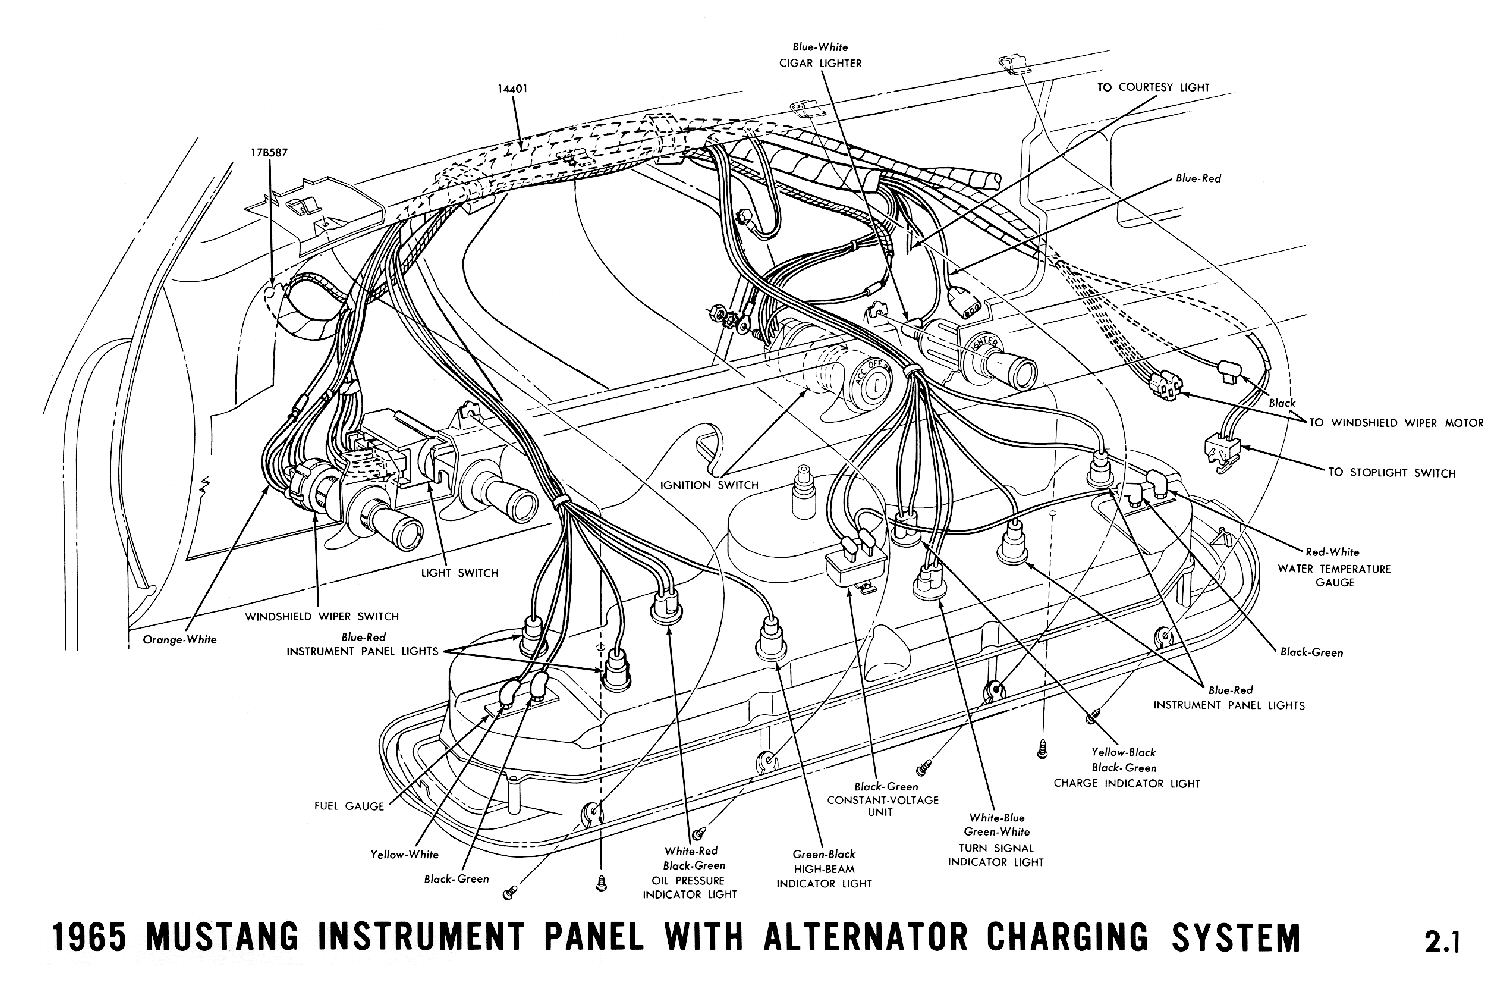 1965a 1965 mustang wiring diagrams average joe restoration mustang wiring harness diagram at mifinder.co